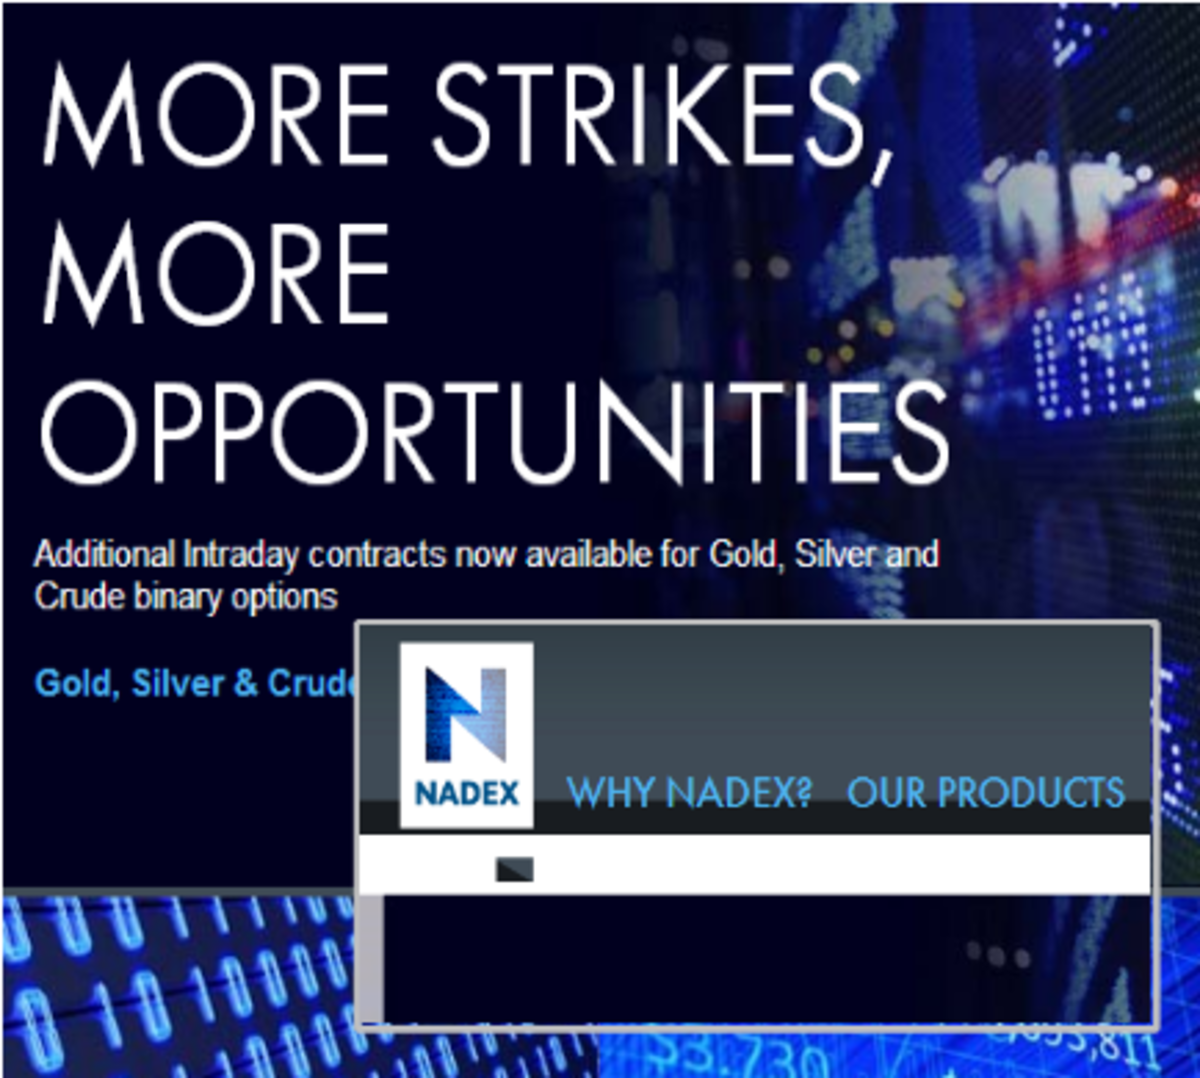 NADEX is the North American Derivatives Exchange, CFTC regulated binary options trading